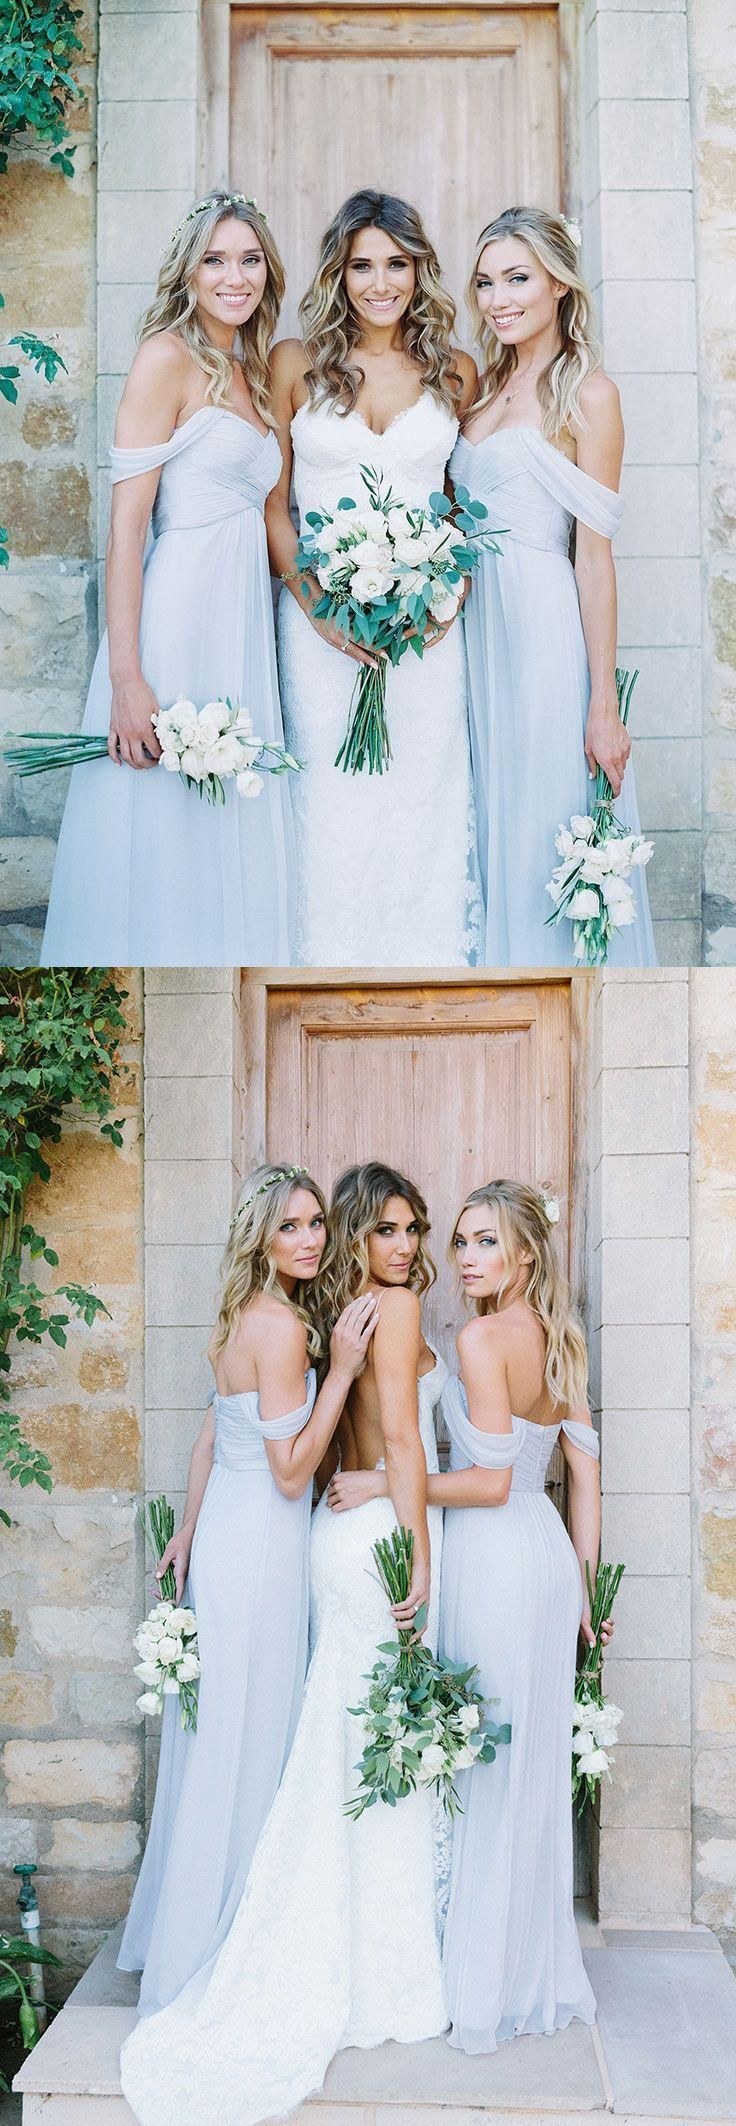 Elegant Baby Blue Off the Shoulder Long Bridesmaid Dresses for Wedding Party